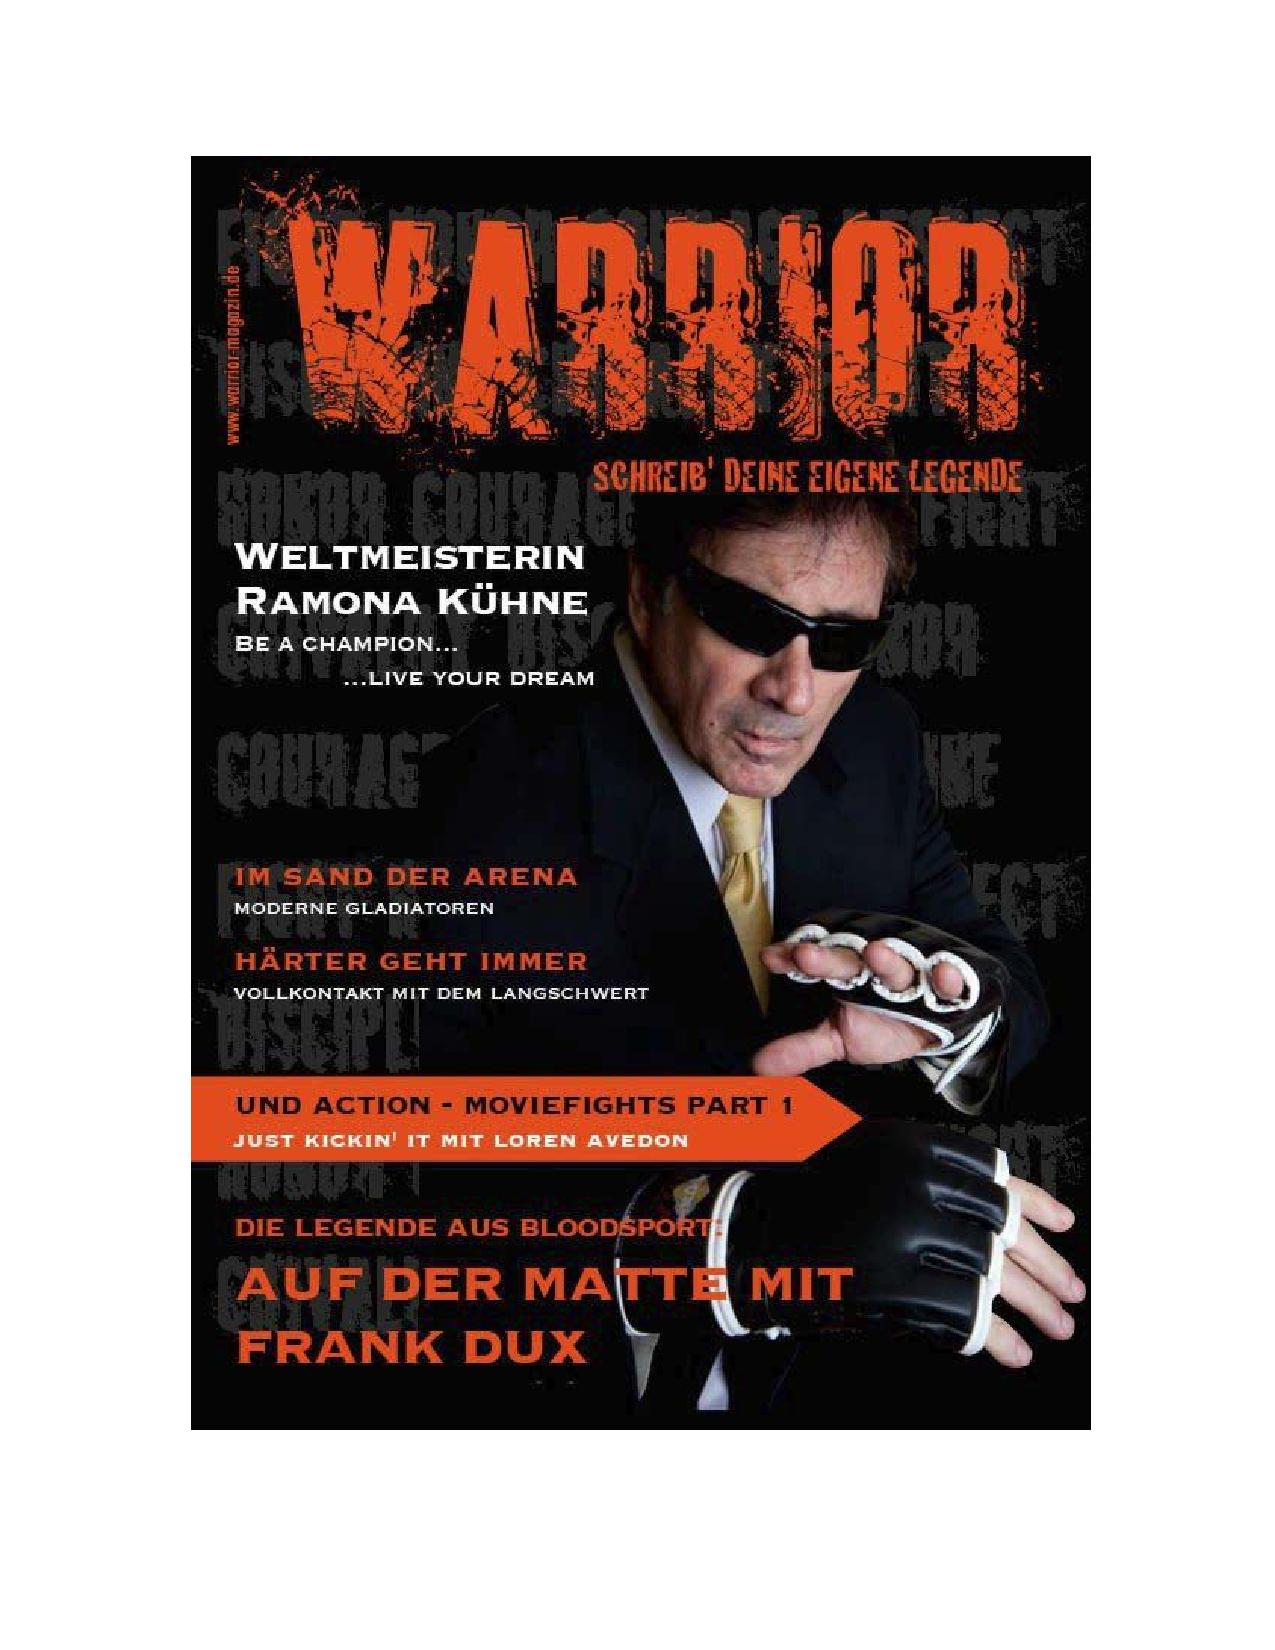 Warrior-Magazin.de